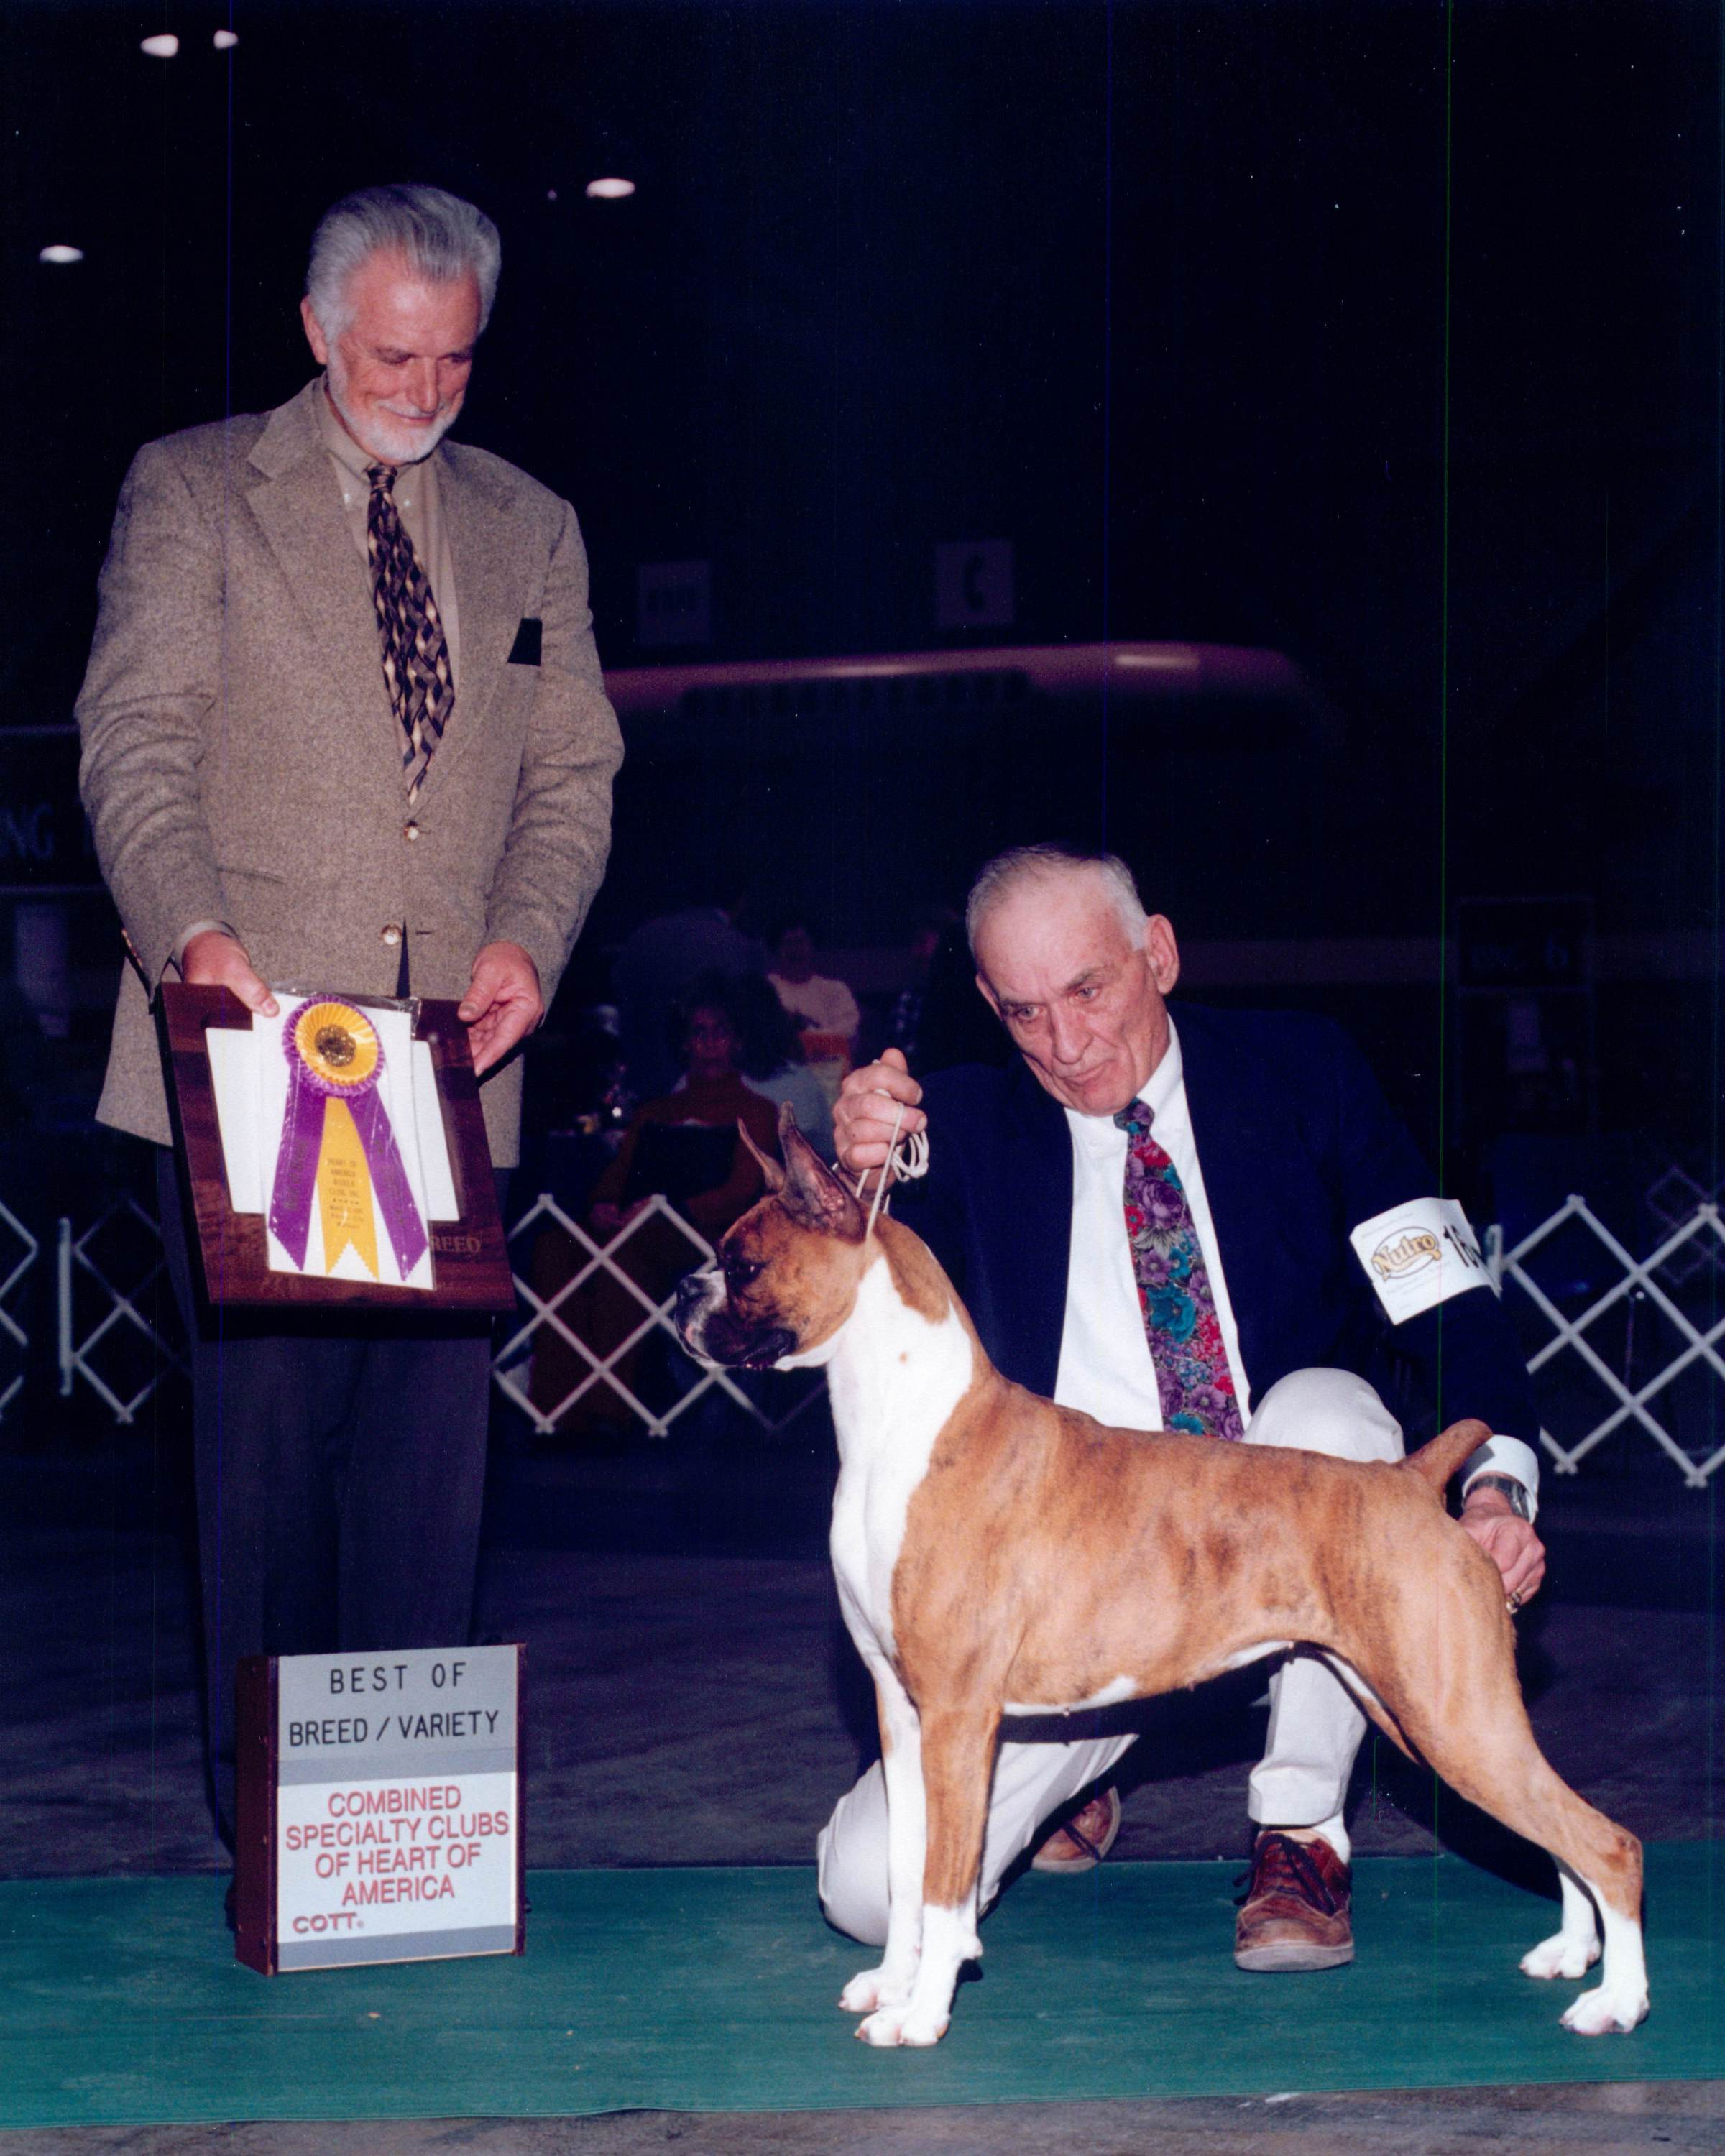 Best of Breed @ 2001 Specialty Show #1